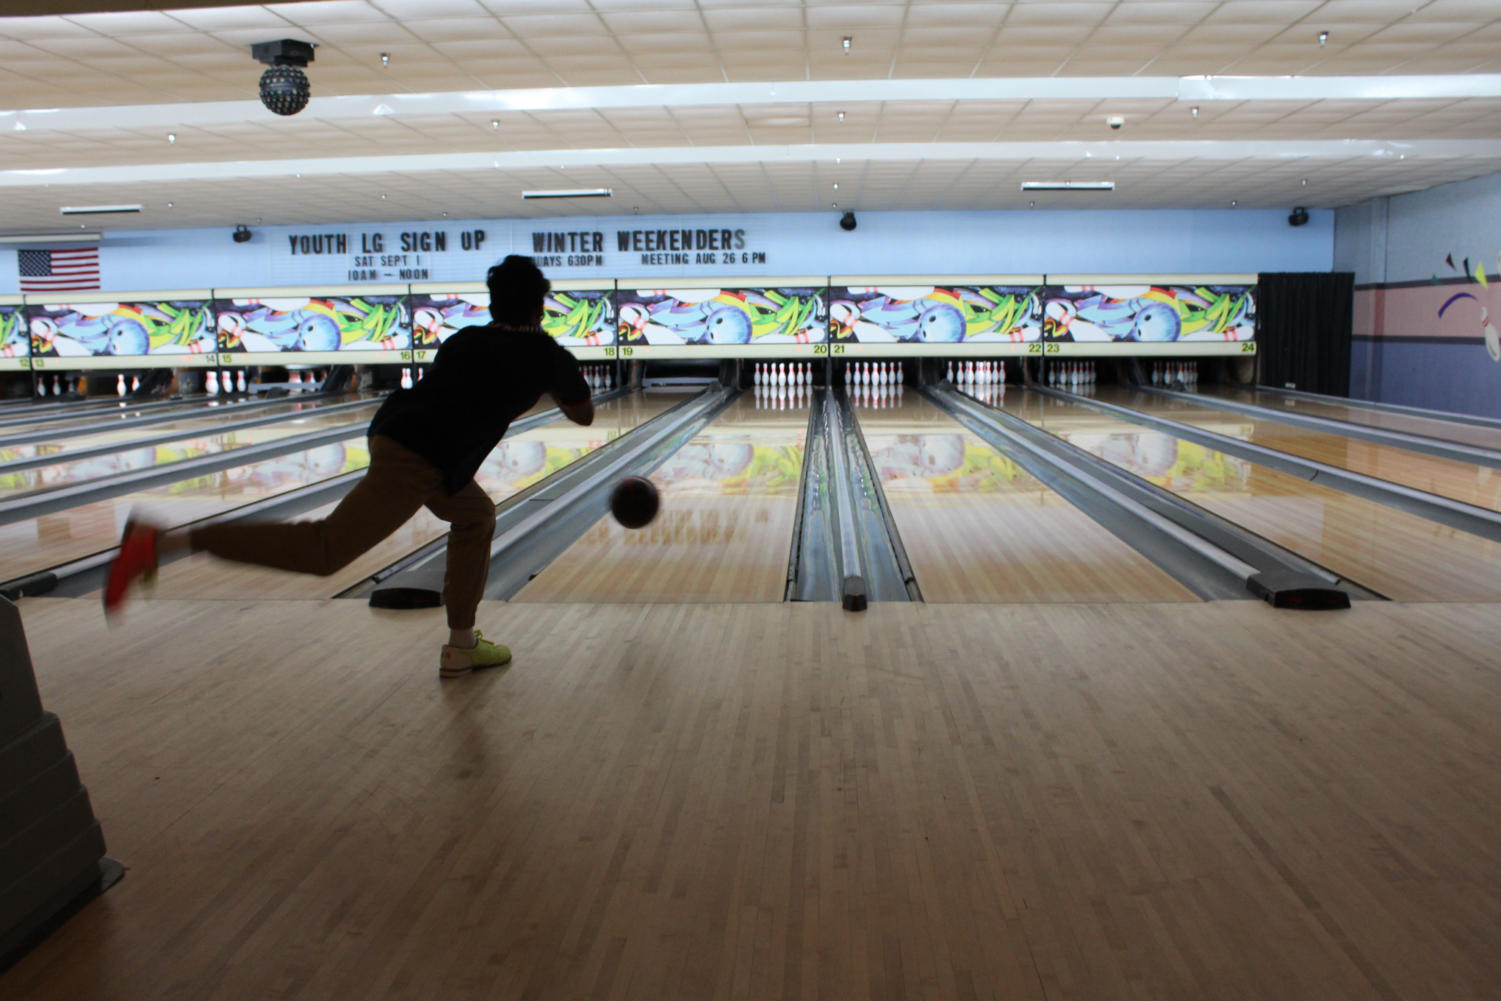 Senior+Josh+Singh+rolls+the+ball+down+the+lane+at+a+bowling+tournament+on+Monday%2C+August+27+at+the+Oviedo+Lanes.Lake+Mary%2C+Lyman%2C+and+Oviedo+High+School+were+among+the+teams+there.%0A